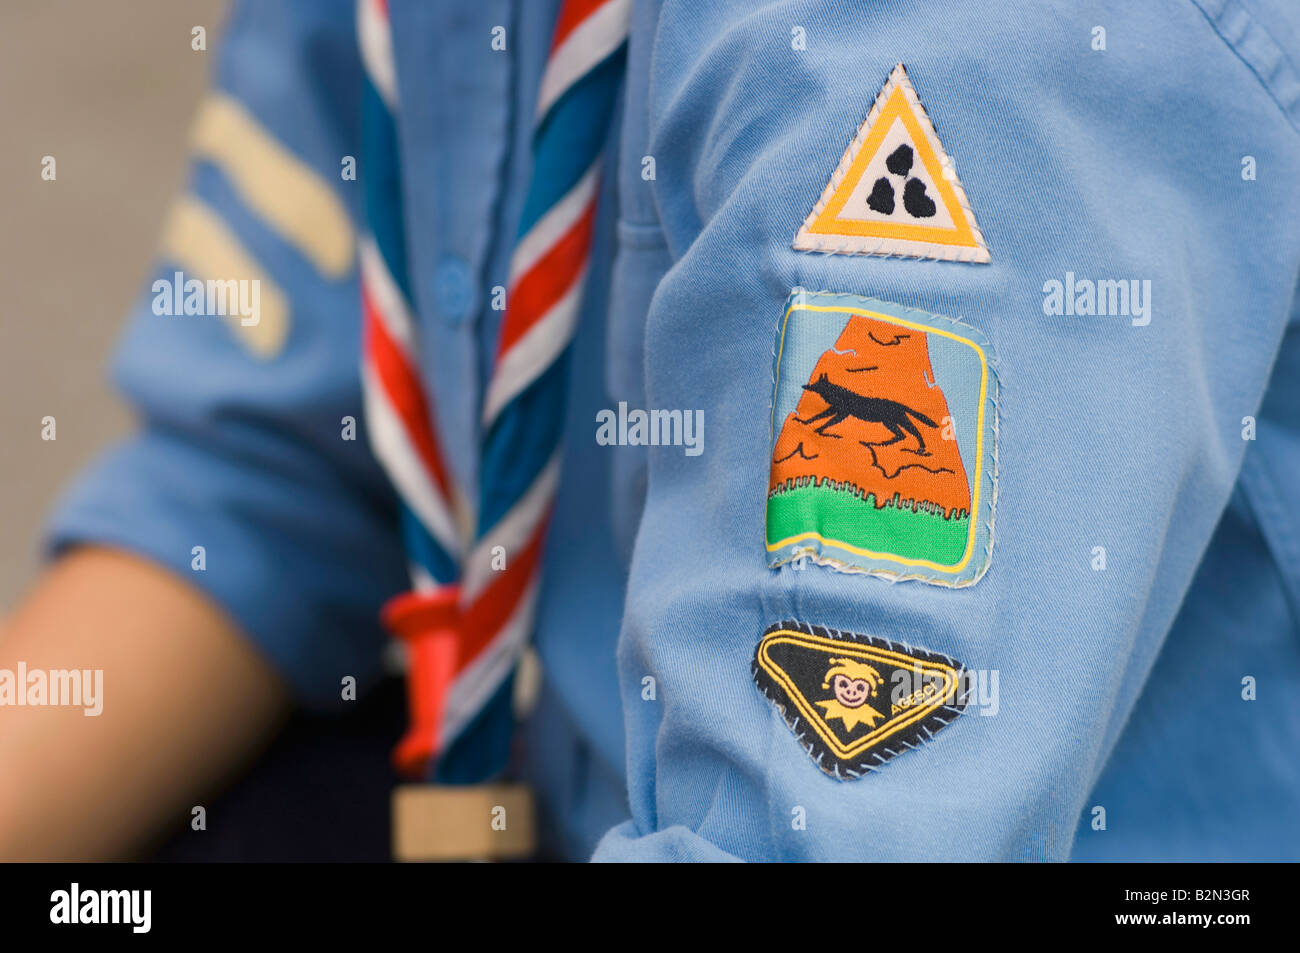 badges and fellowship, torre boldone, Italy - Stock Image